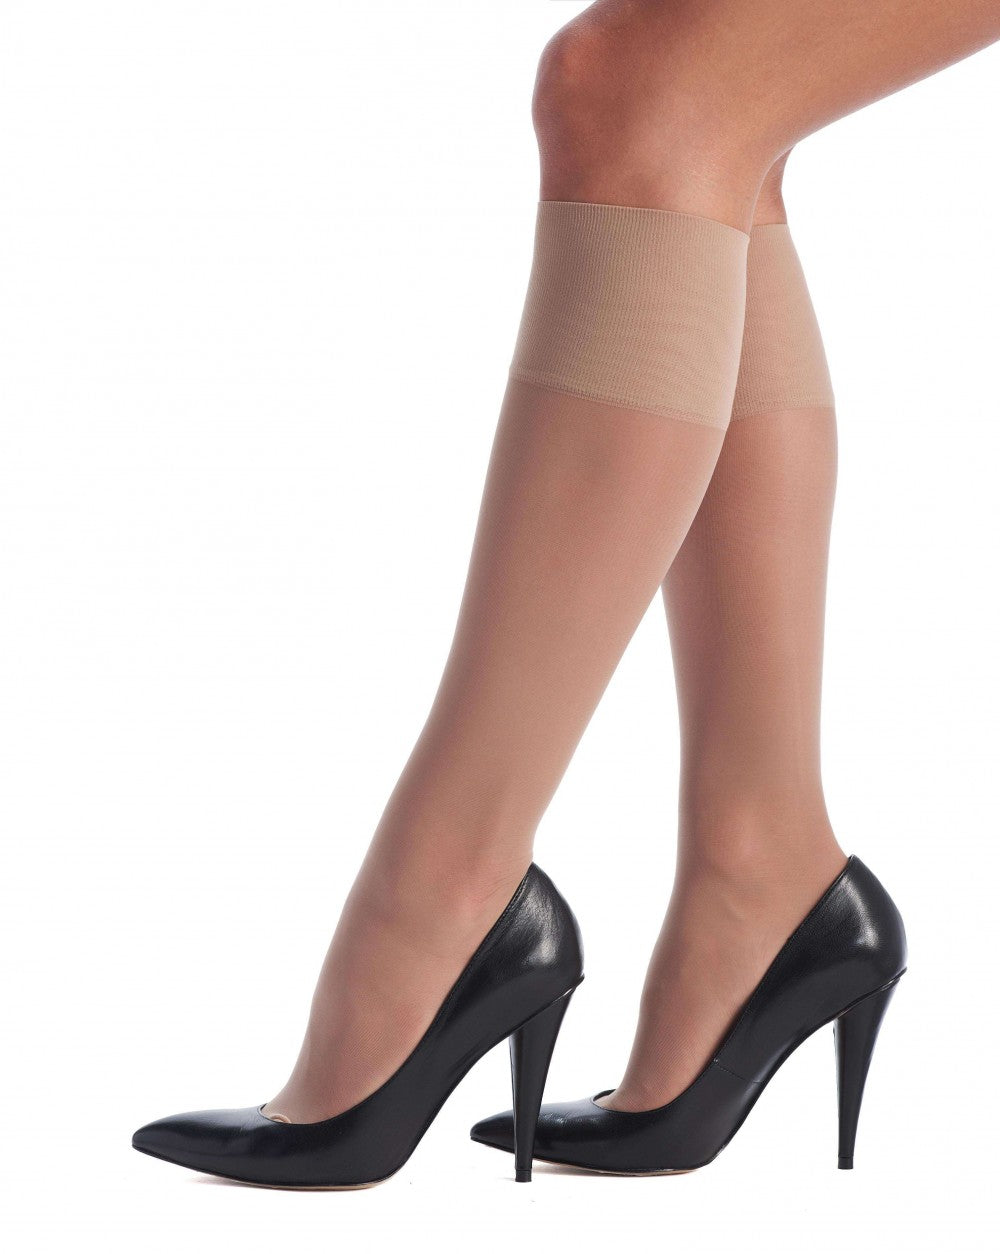 OROBLU Knee Highs Repos 70 Relax, Medium Compression, NUDE